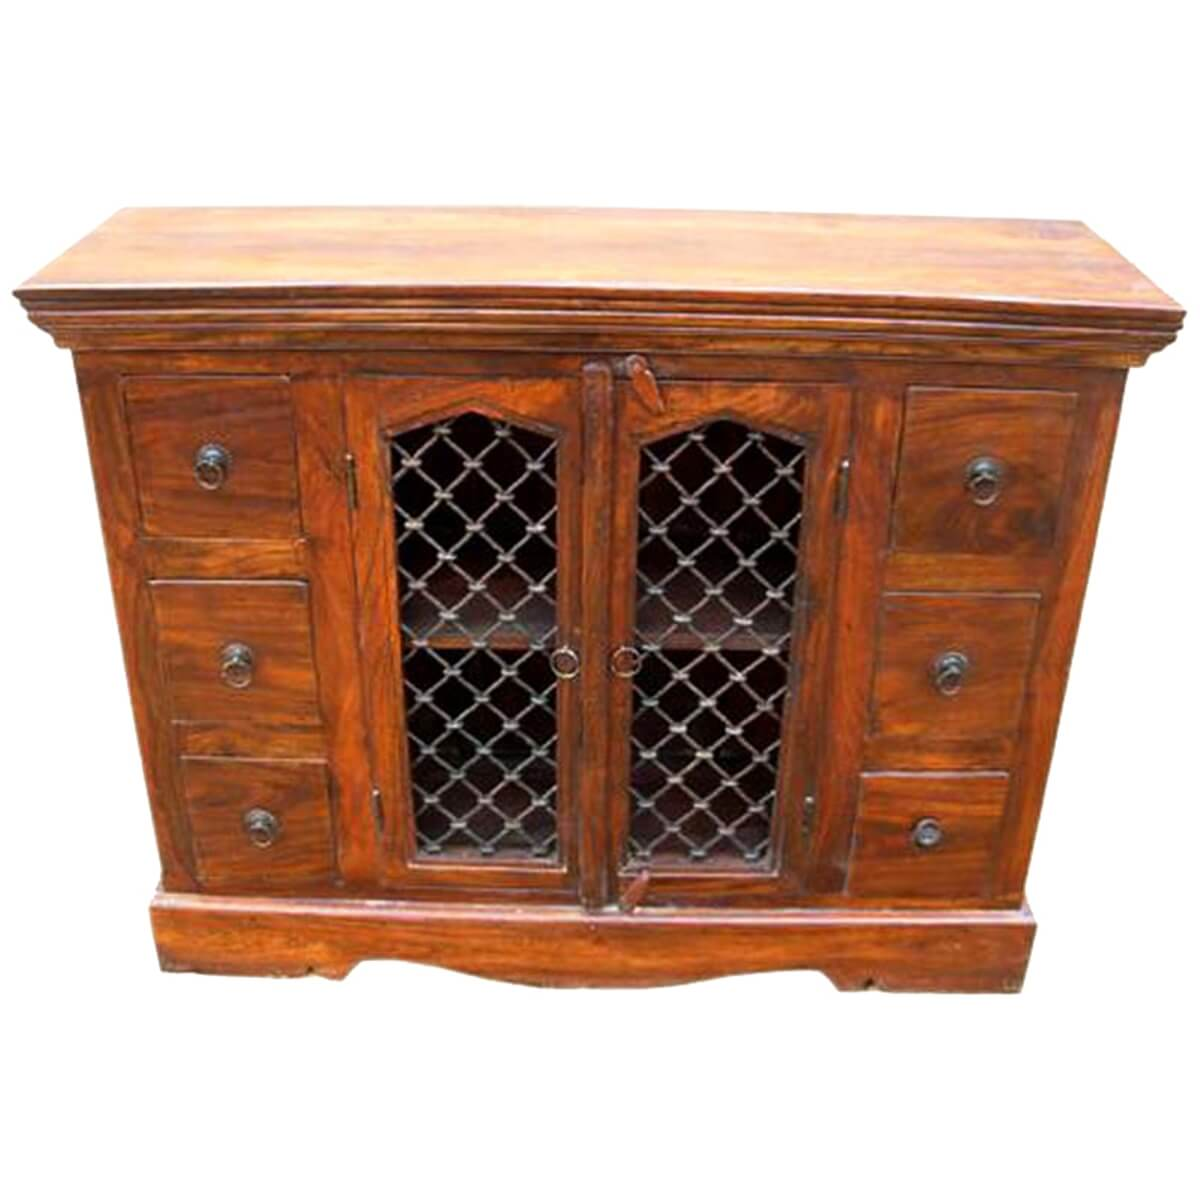 Discount Kitchen Cabinets Philadelphia: Philadelphia Classic Solid Wood 6 Drawer Dining Room